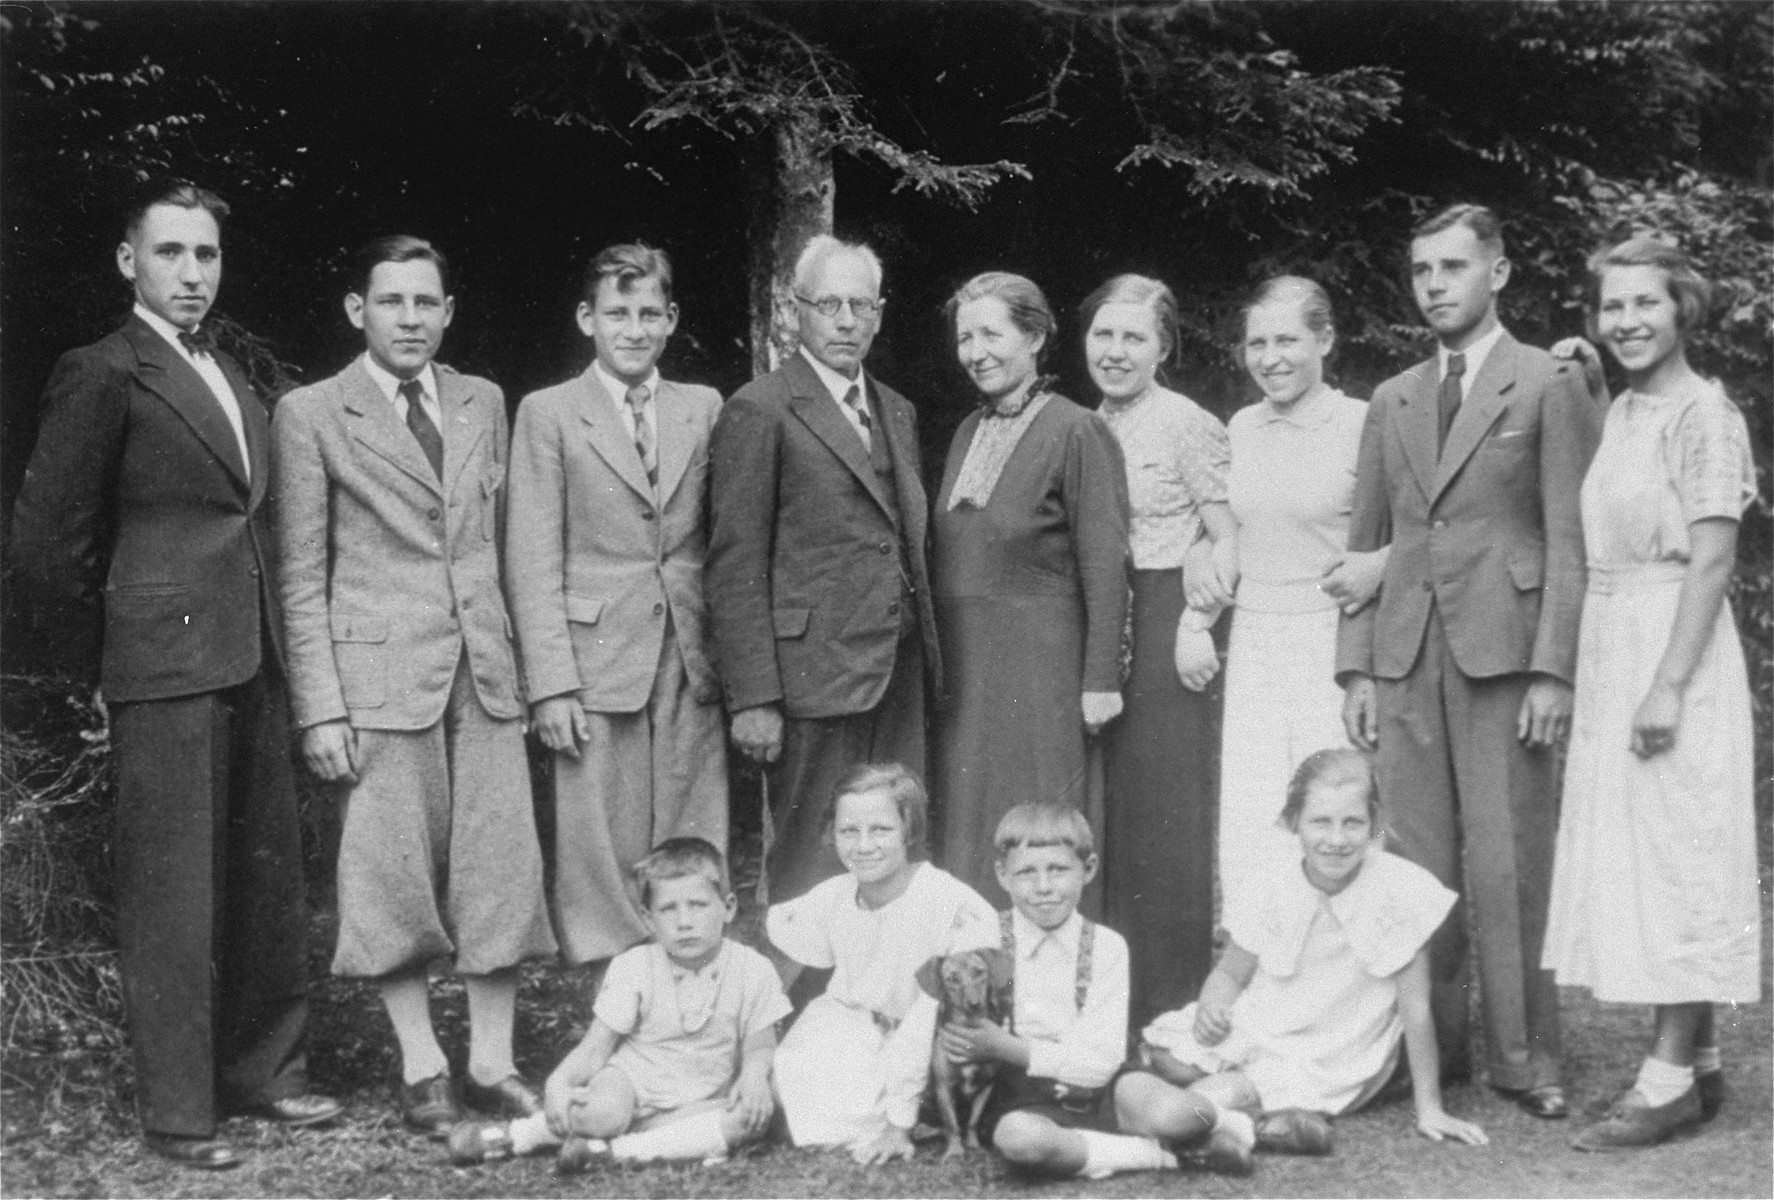 The last photo of the entire Kusserow family.    Pictured standing from left to right are Siegfried, Karl-Heinz, Wolfgang, Franz, Hilda, Annemarie, Waltraud, Wilhelm, and Hildegard.  Seated are Paul-Gerhard, Magdalena, Hans-Werner, and Elisabeth.